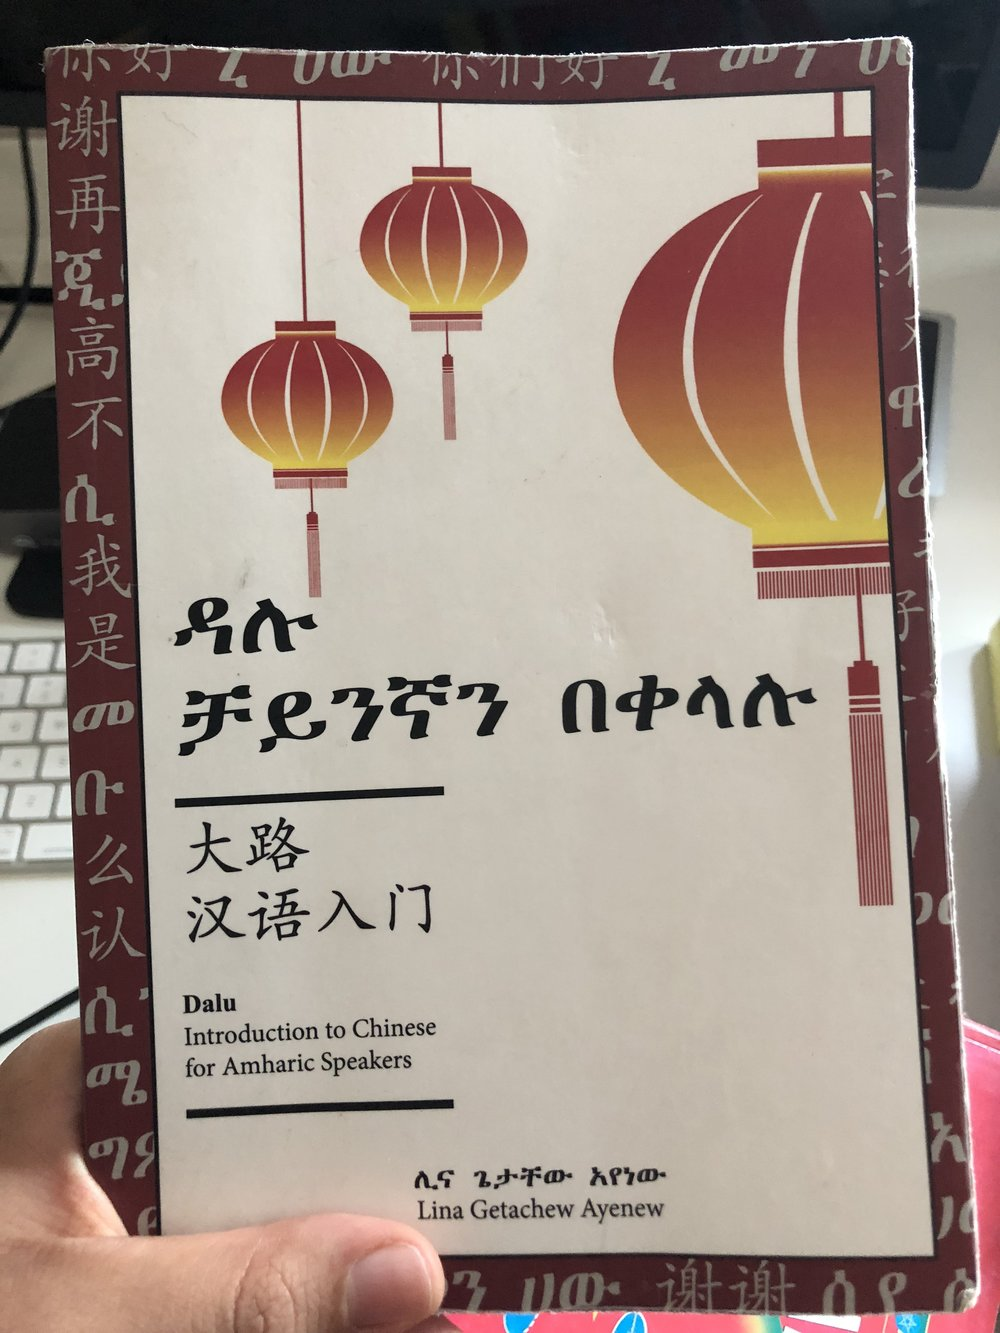 My first book! - Published in 2016, it helps Amharic speakers learn introductory Mandarin. You can learn more about it here: chineseforethiopia.com